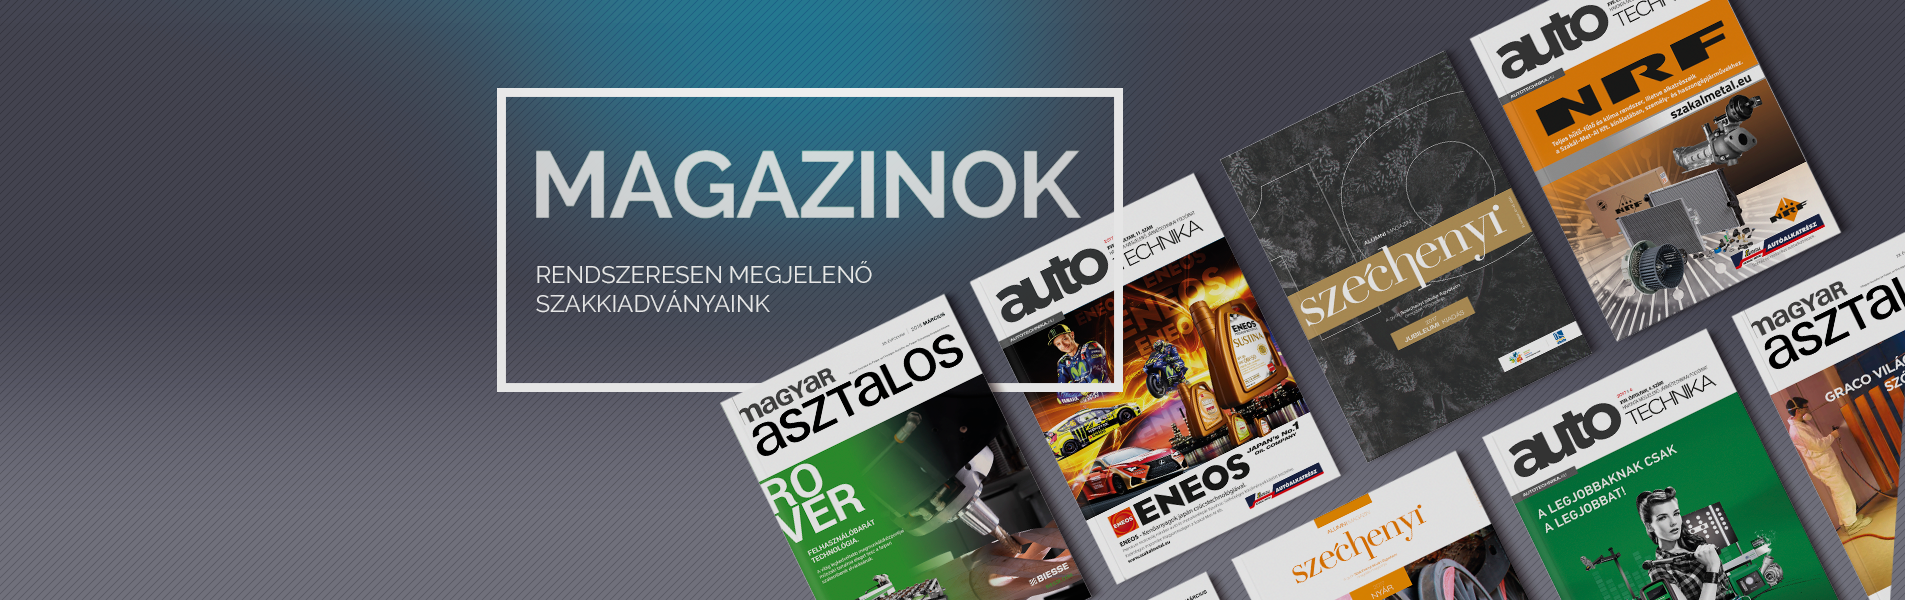 magazin_headers_1905x600_2018